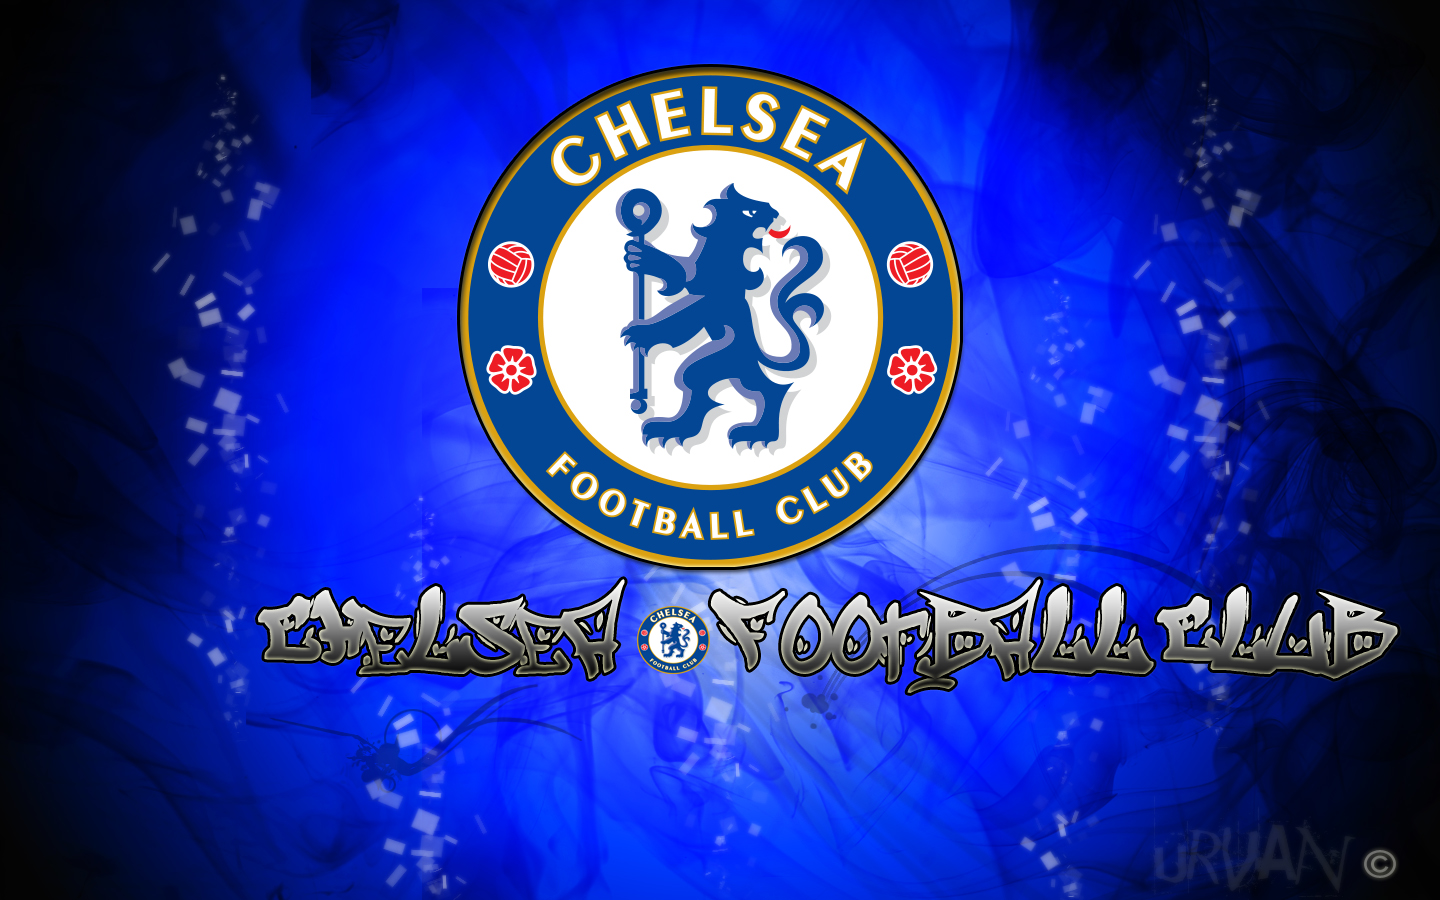 chelsea fc pictures and videos chelsea fc logo hd